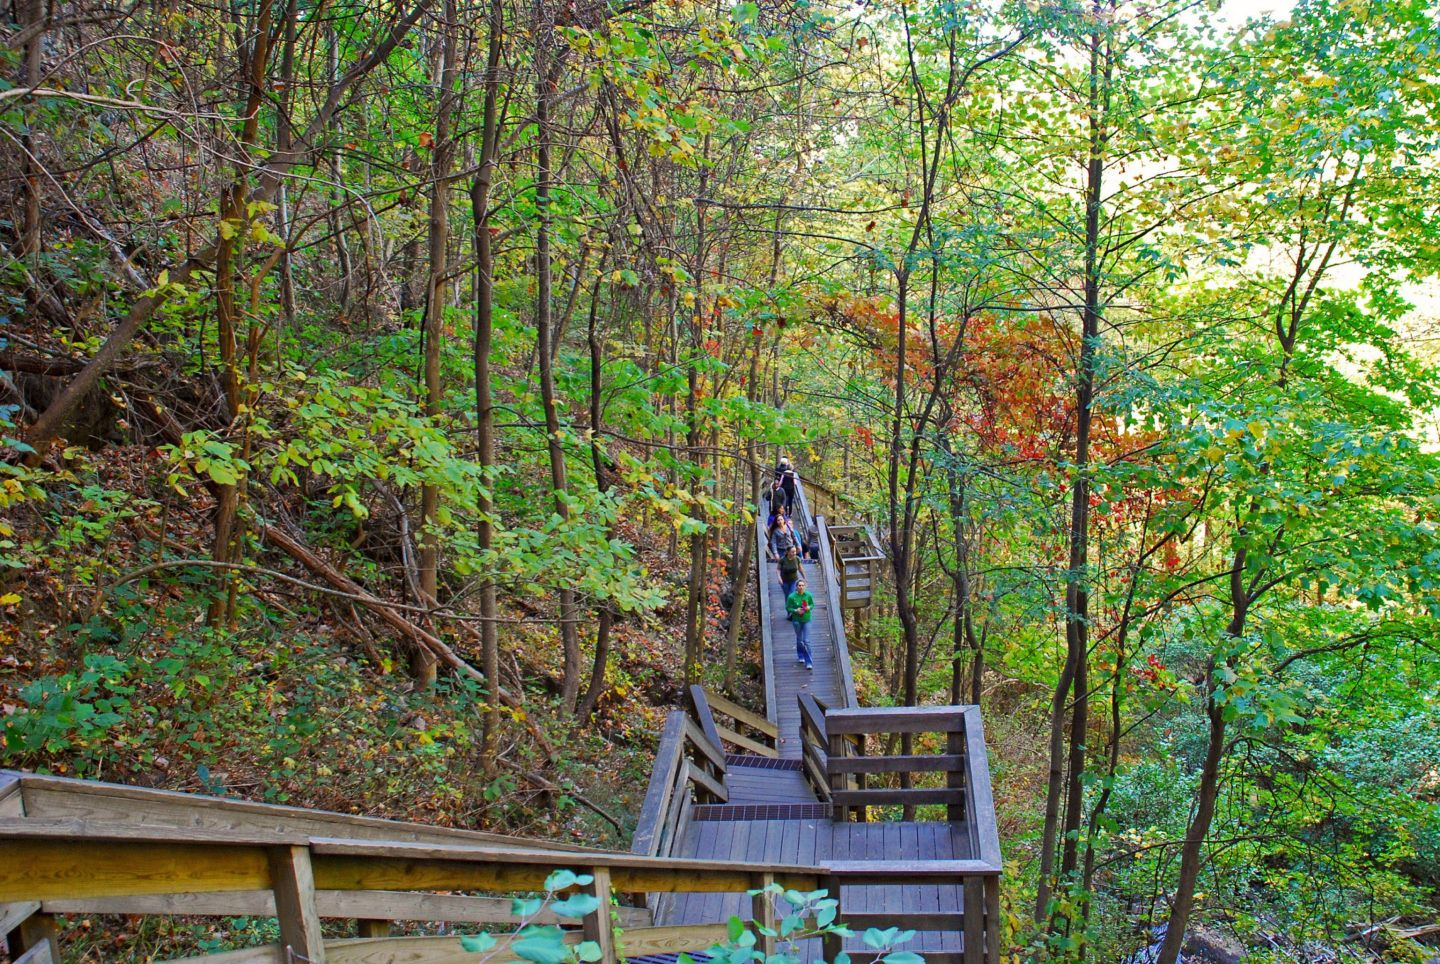 Horizontal-Staircase_Amicalola-Falls BSB Travel:  Top Ten Georgia State Parks for Fall Color